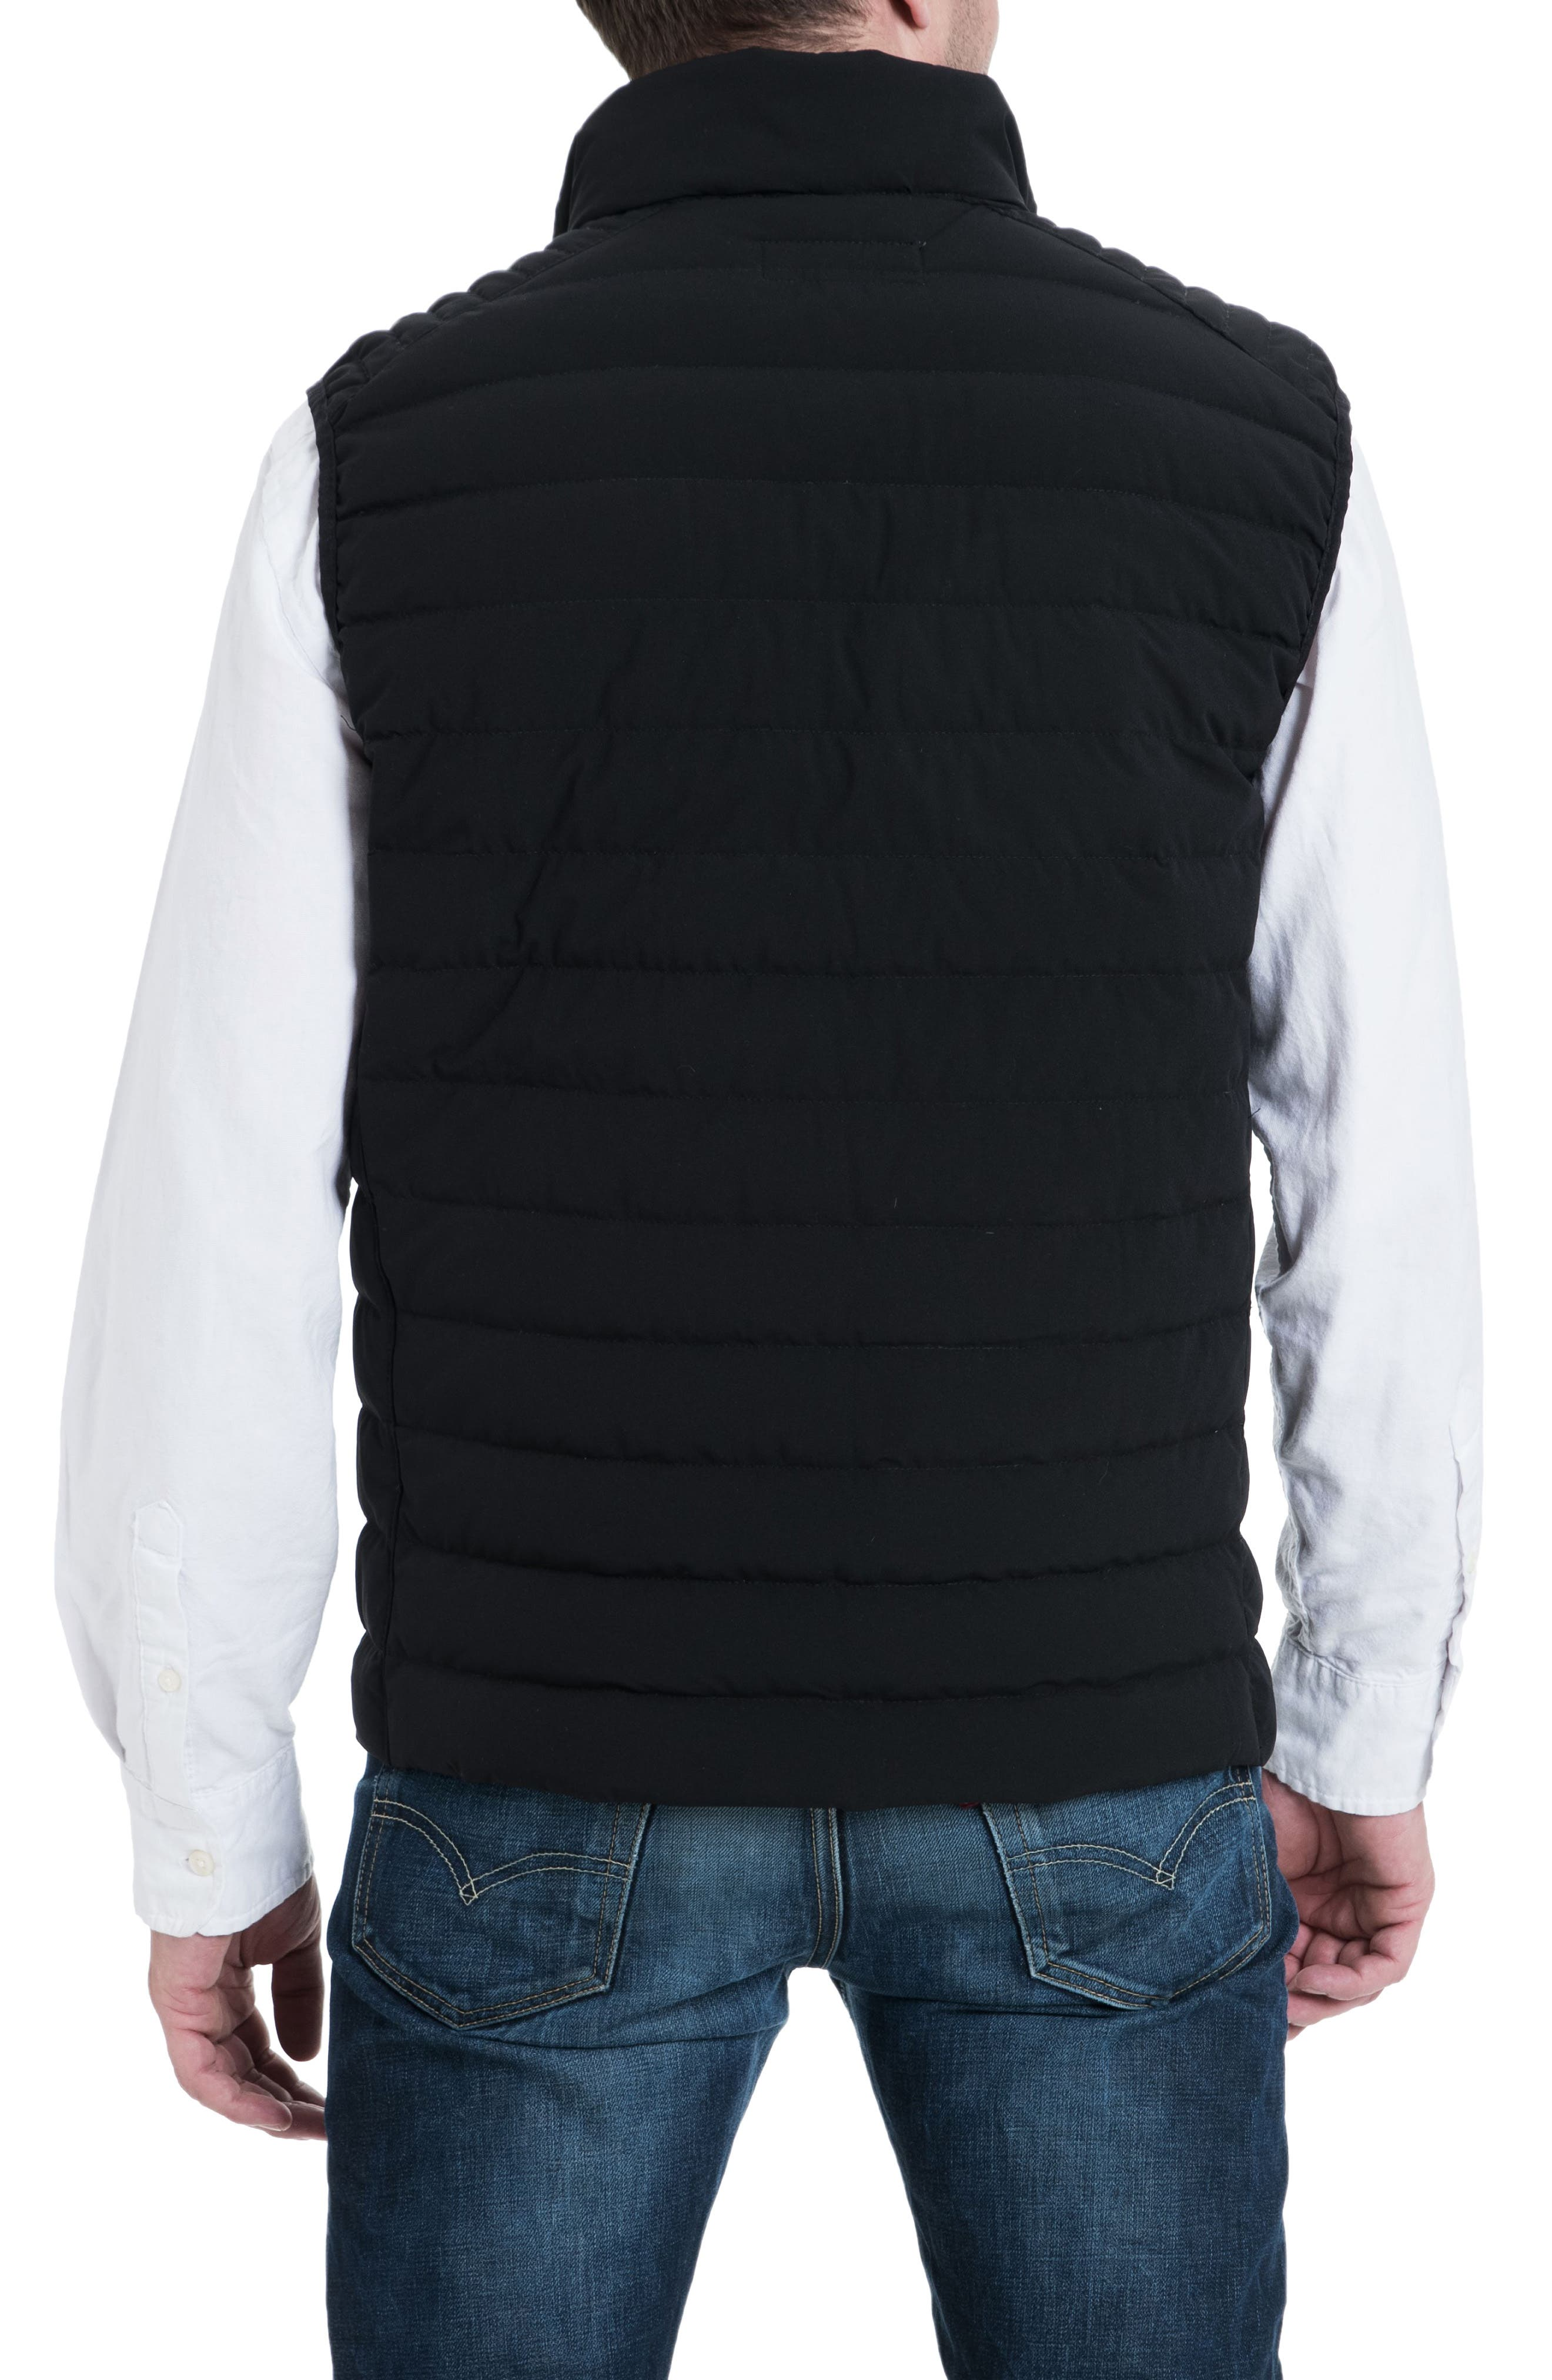 Marshall Vest,                             Alternate thumbnail 2, color,                             BLACK